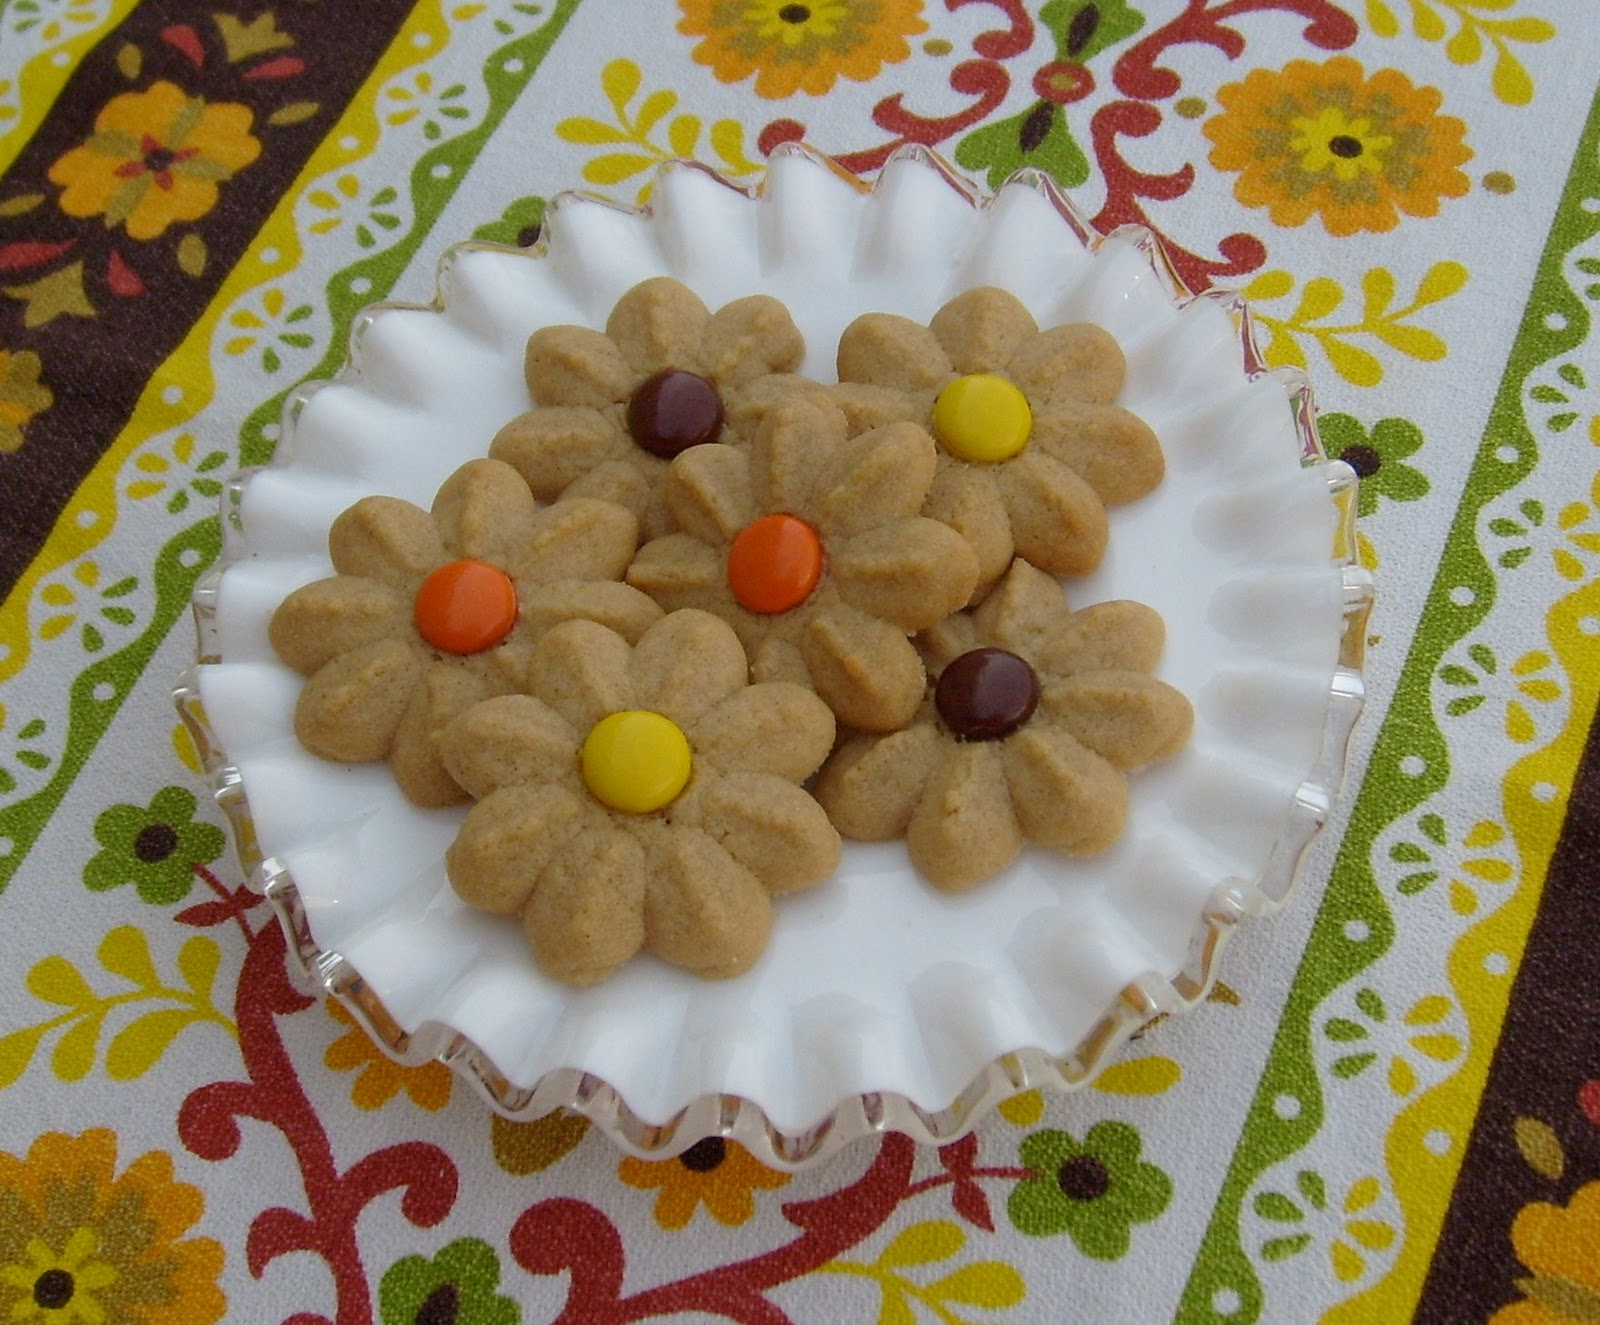 Peanut butter pressed cookie recipes